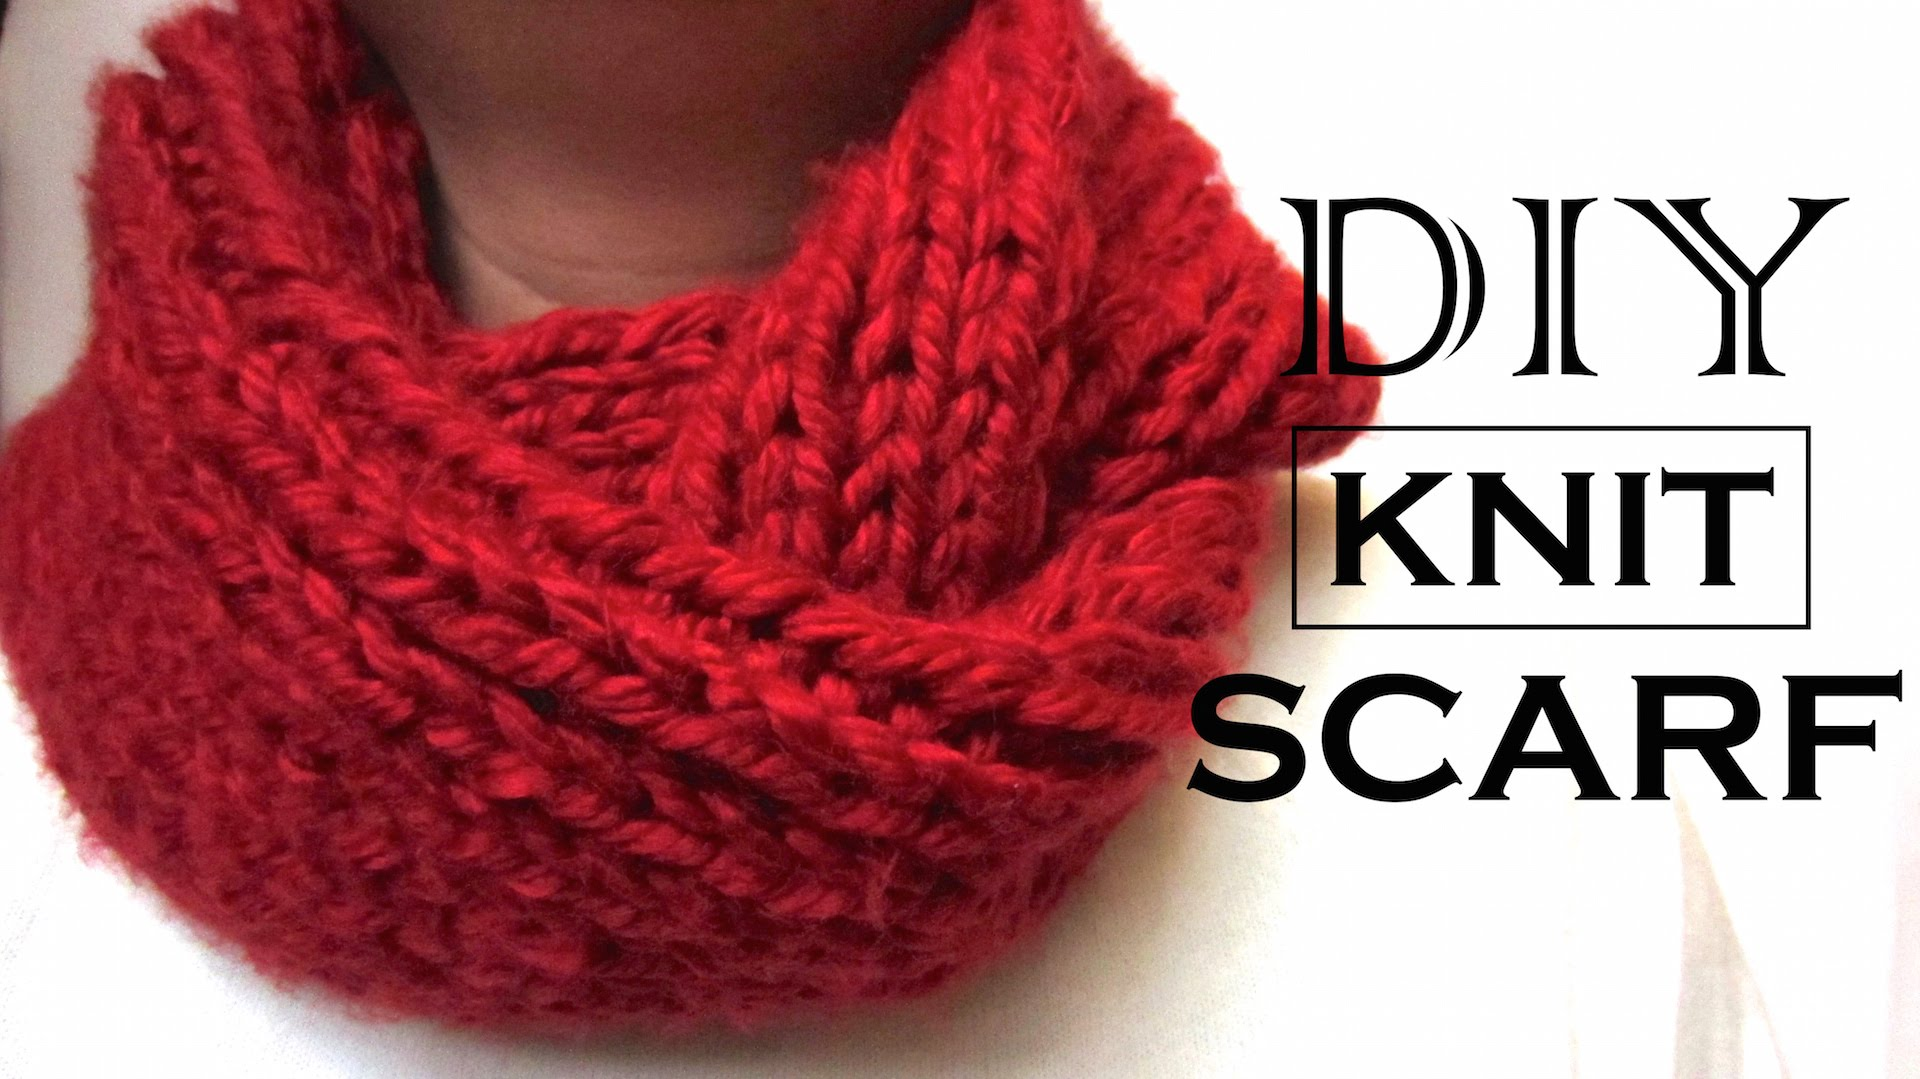 Comprehensive Tutorial On How To Knit A Scarf